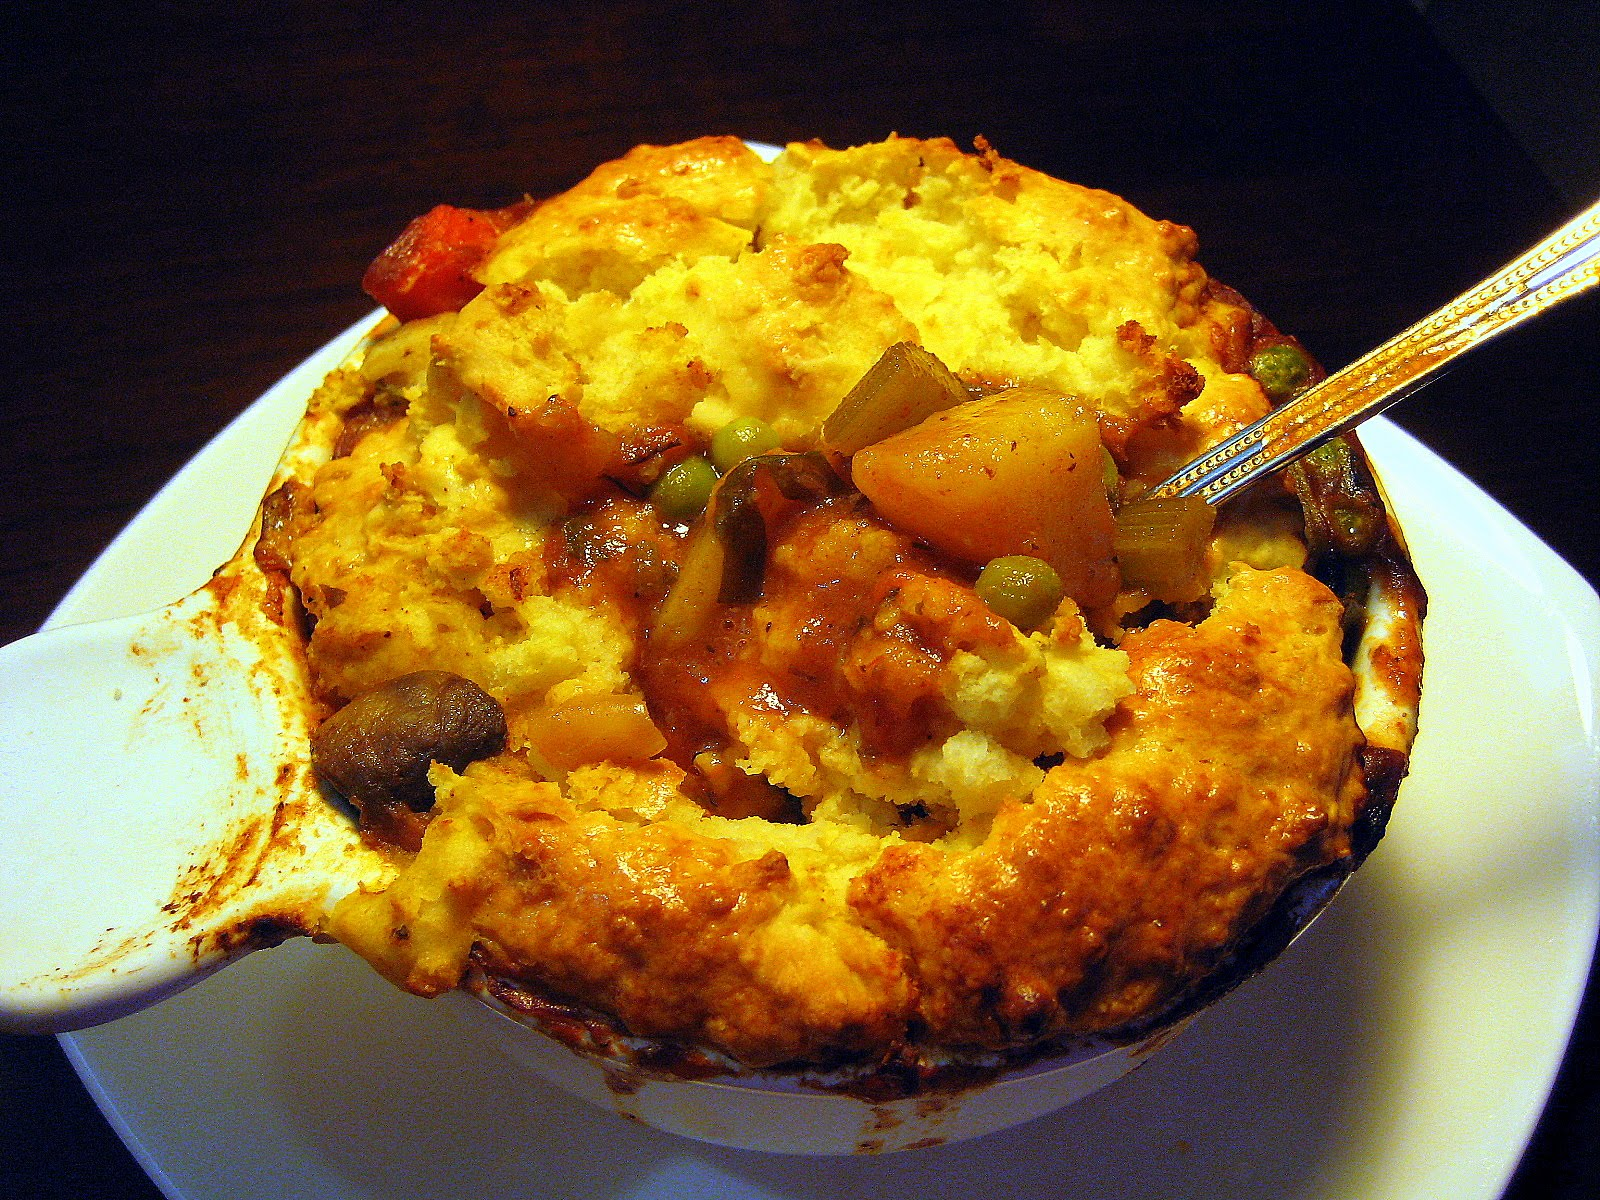 Food Tastes Yummy: BEEF POT PIE WITH A BISCUIT CRUST